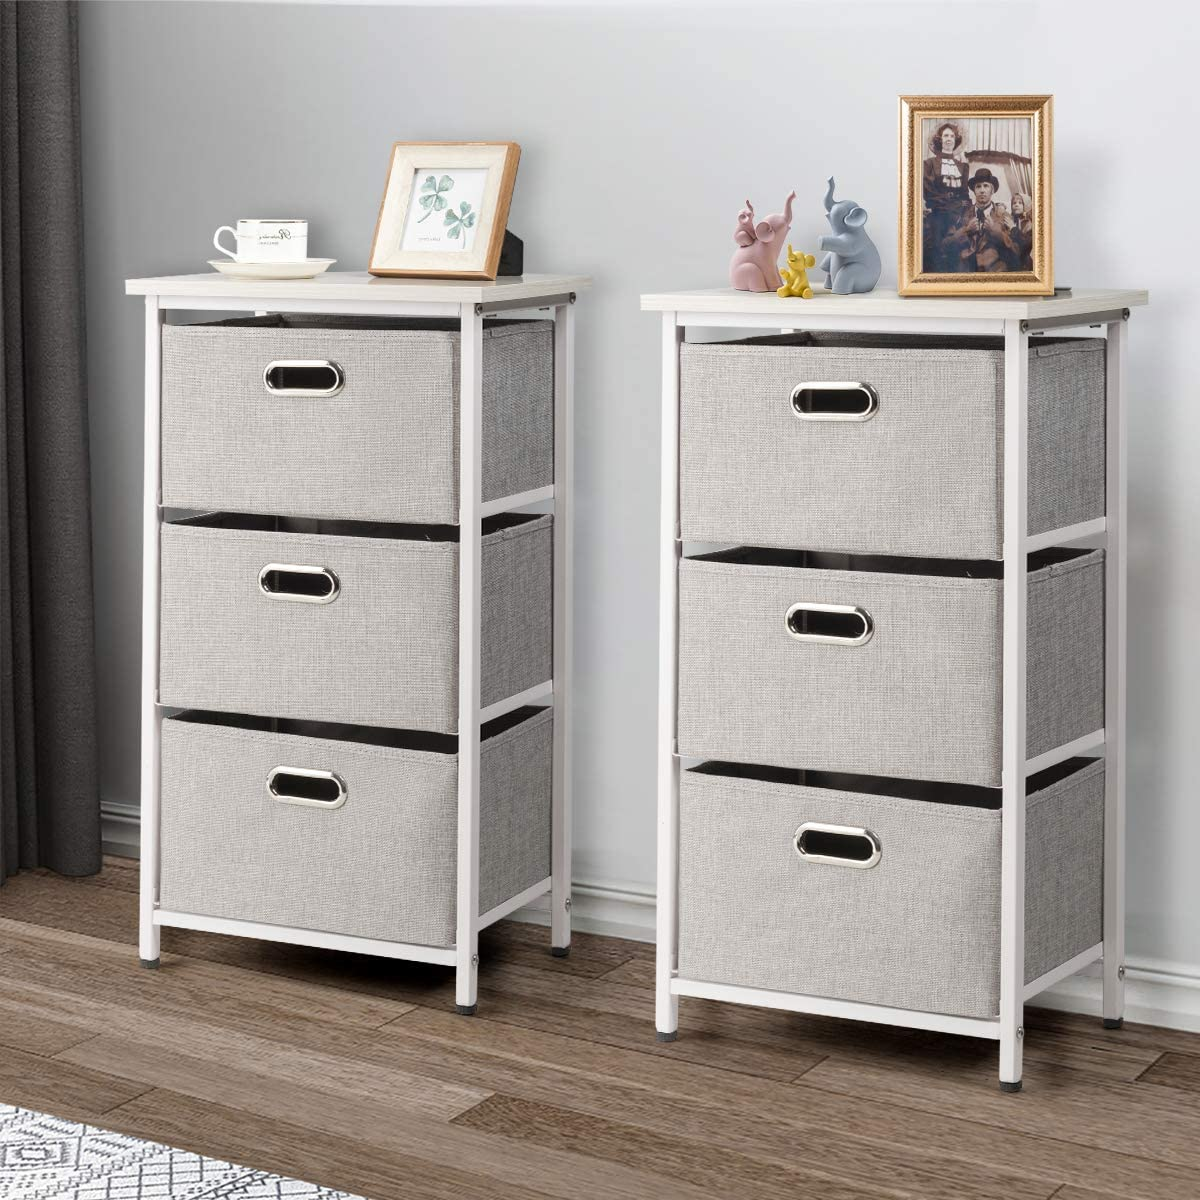 Giantex Vertical Dresser Storage W 3 Fabric Drawers,Easy Pull Fabric Bins,Steel Frame and Wood Top,3-Tier Organizer Tower Unit for Bedroom Hallway Entryway End Table 2, White